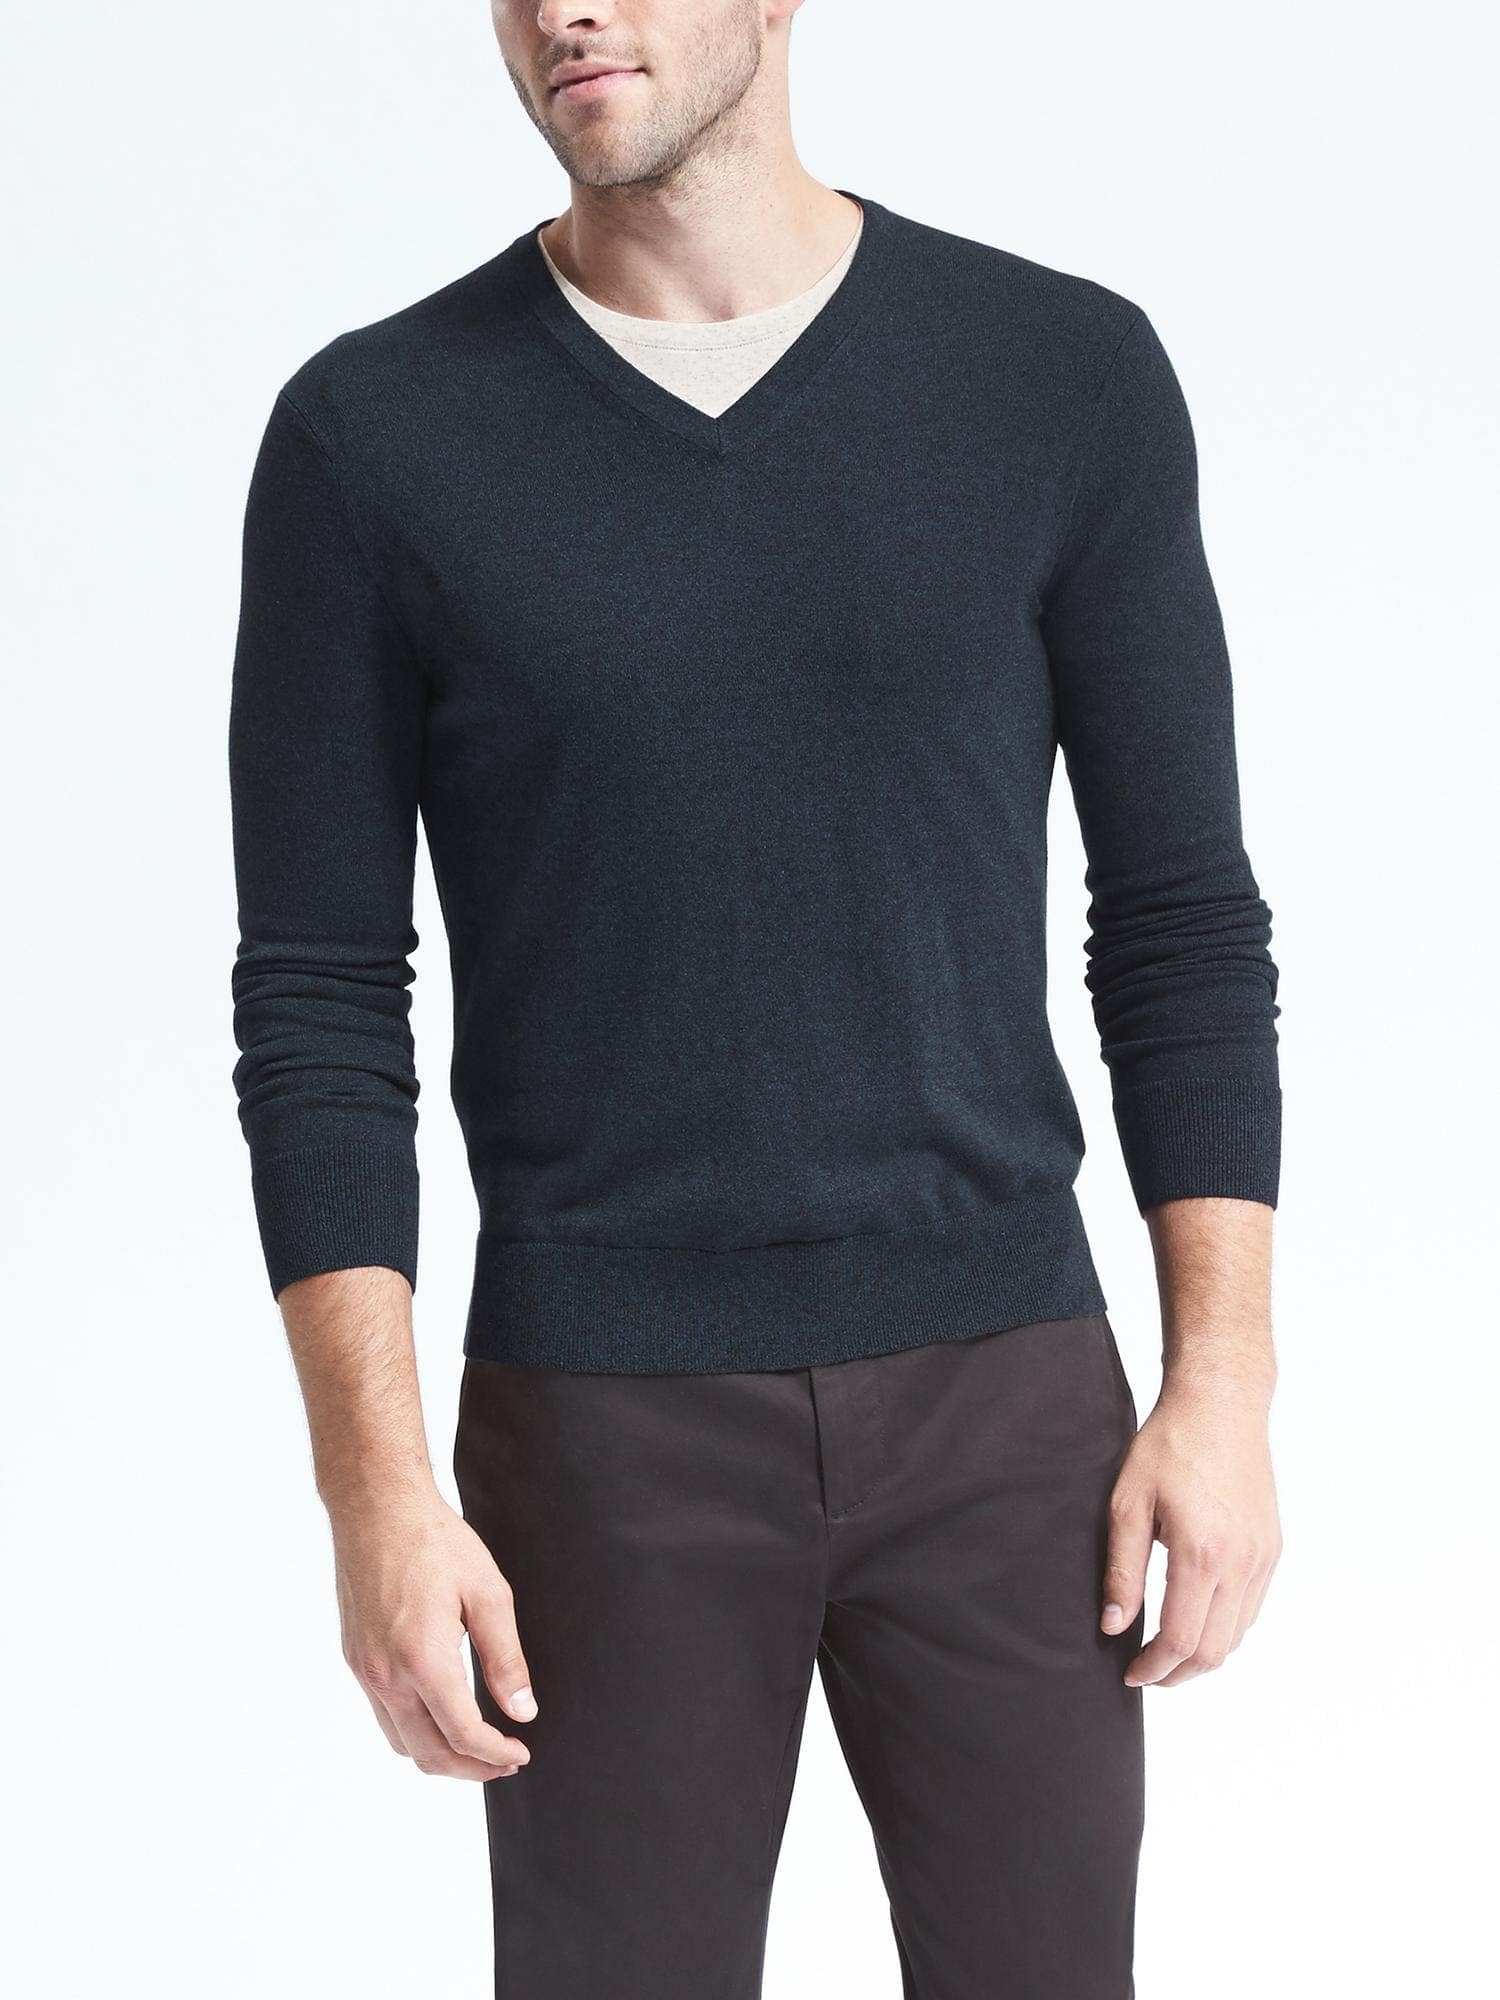 Banana Republic: Men's Slim Silk Cotton Cashmere Sweater - V-Neck $25.50, Crewneck $29.25 + Free Store Pickup/Free Shipping